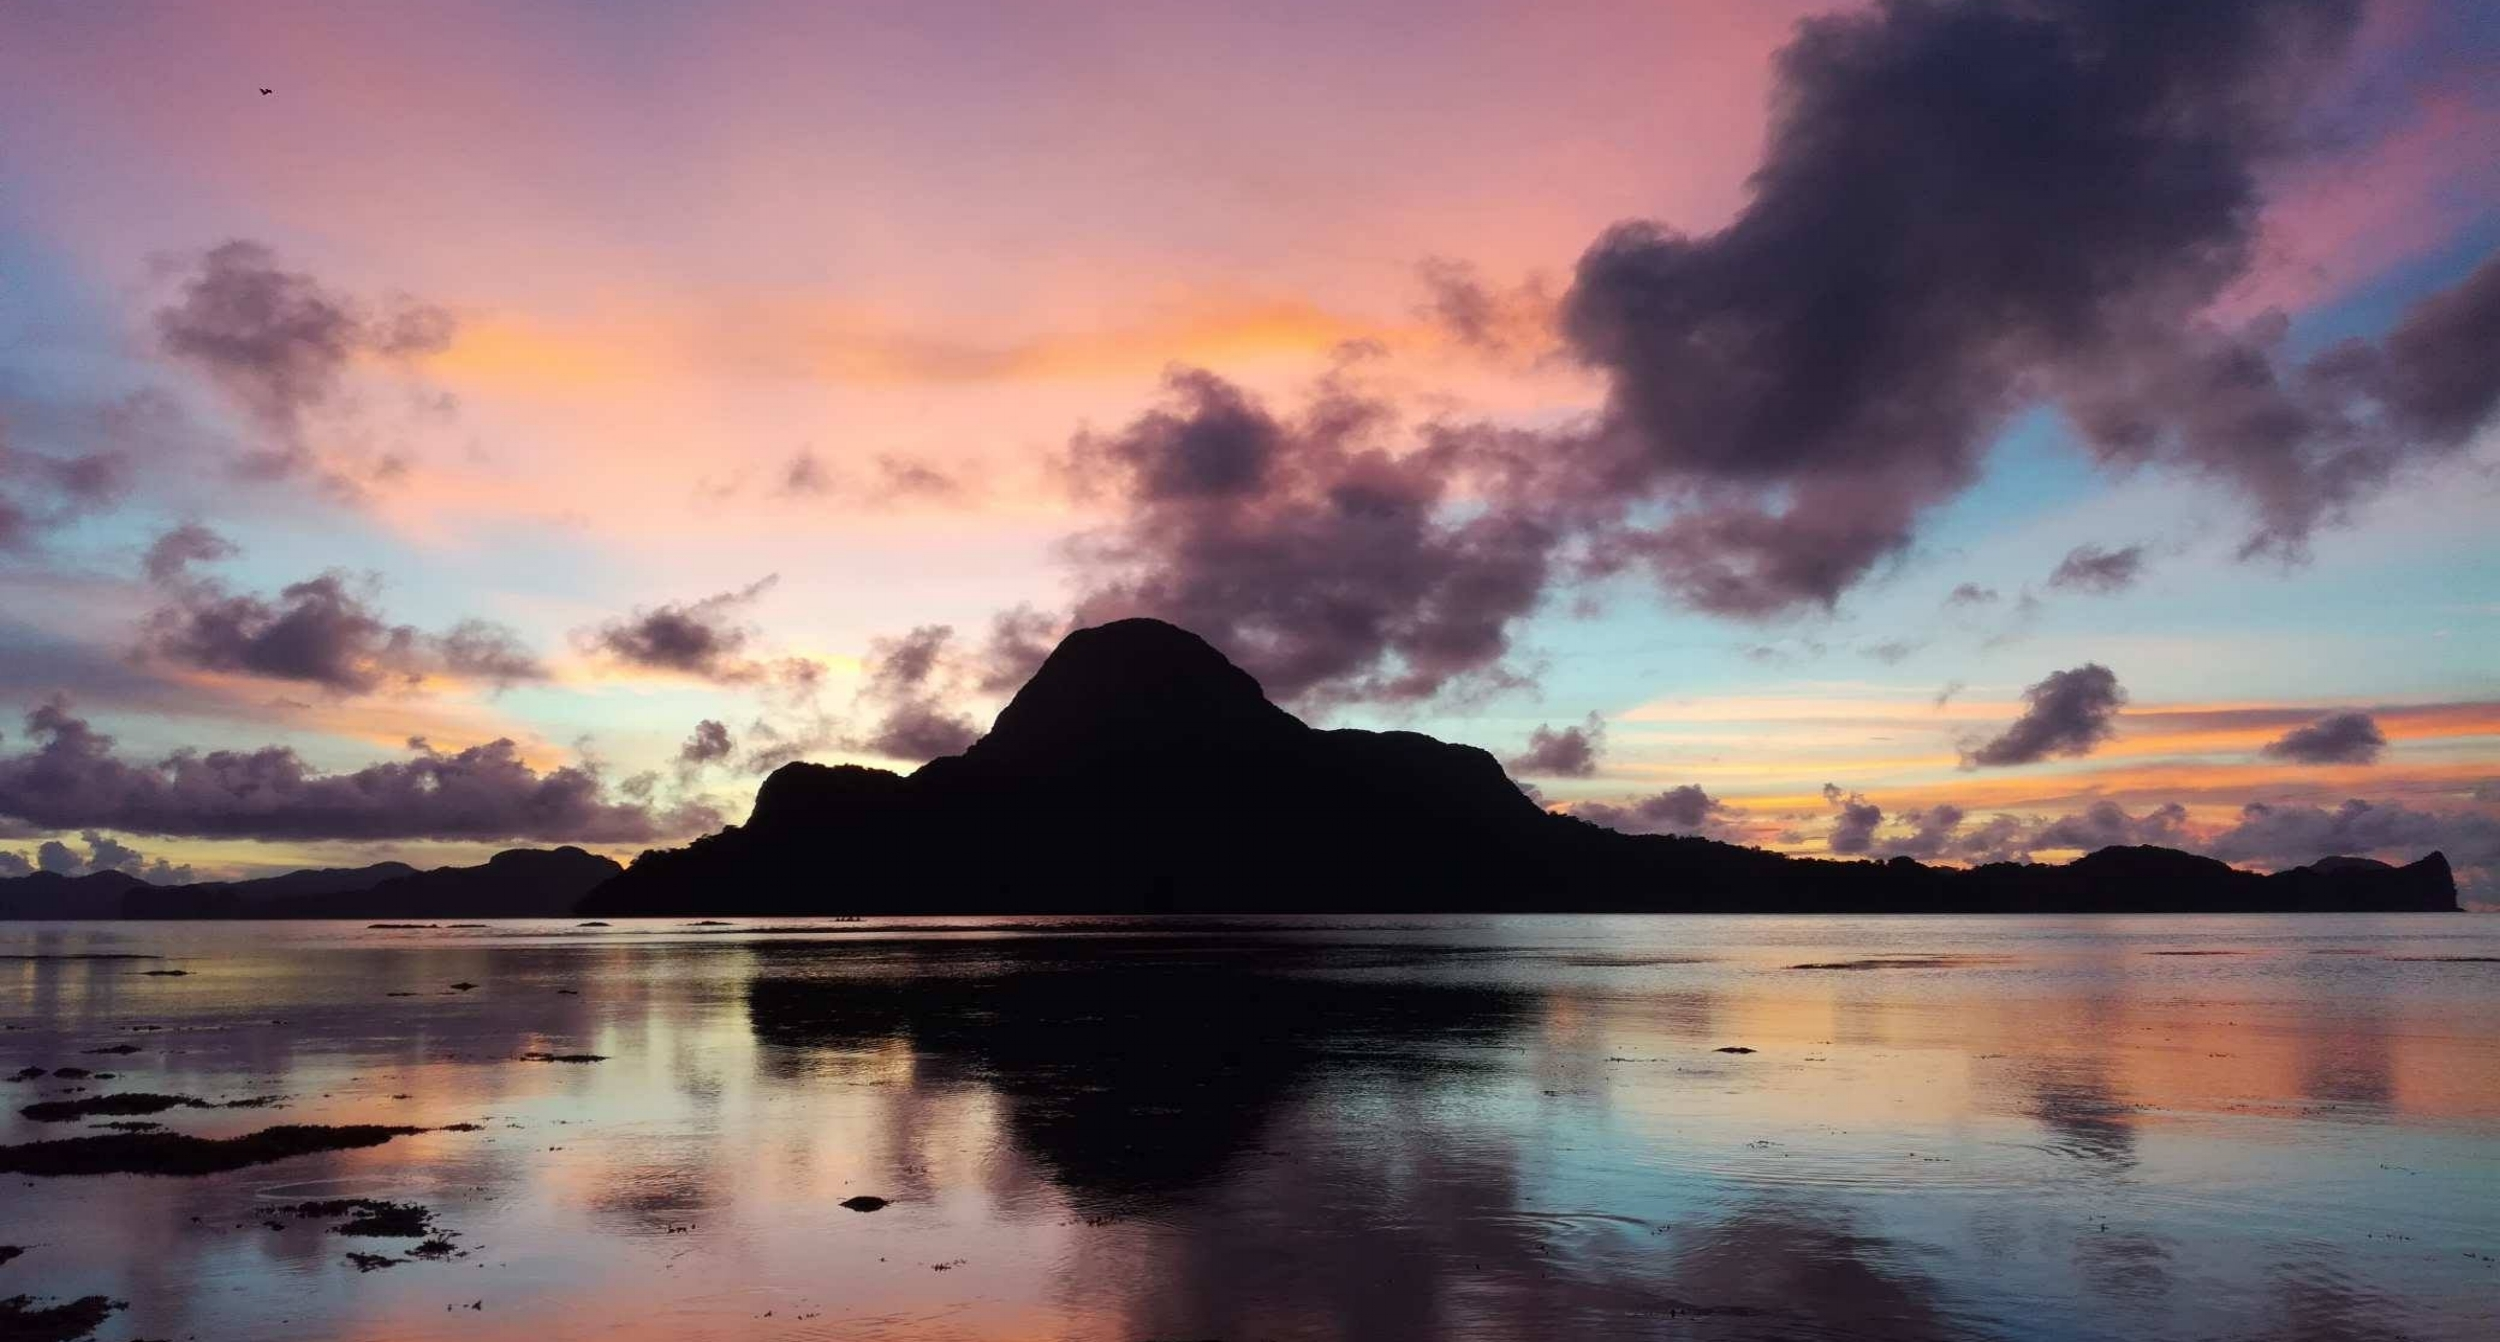 Catch the best sunset - Head to Caalan Beach (a 30-min walk from town) and admire a gorgeous view of Cadlao Island joined with a unique mix of colors. No filter needed.